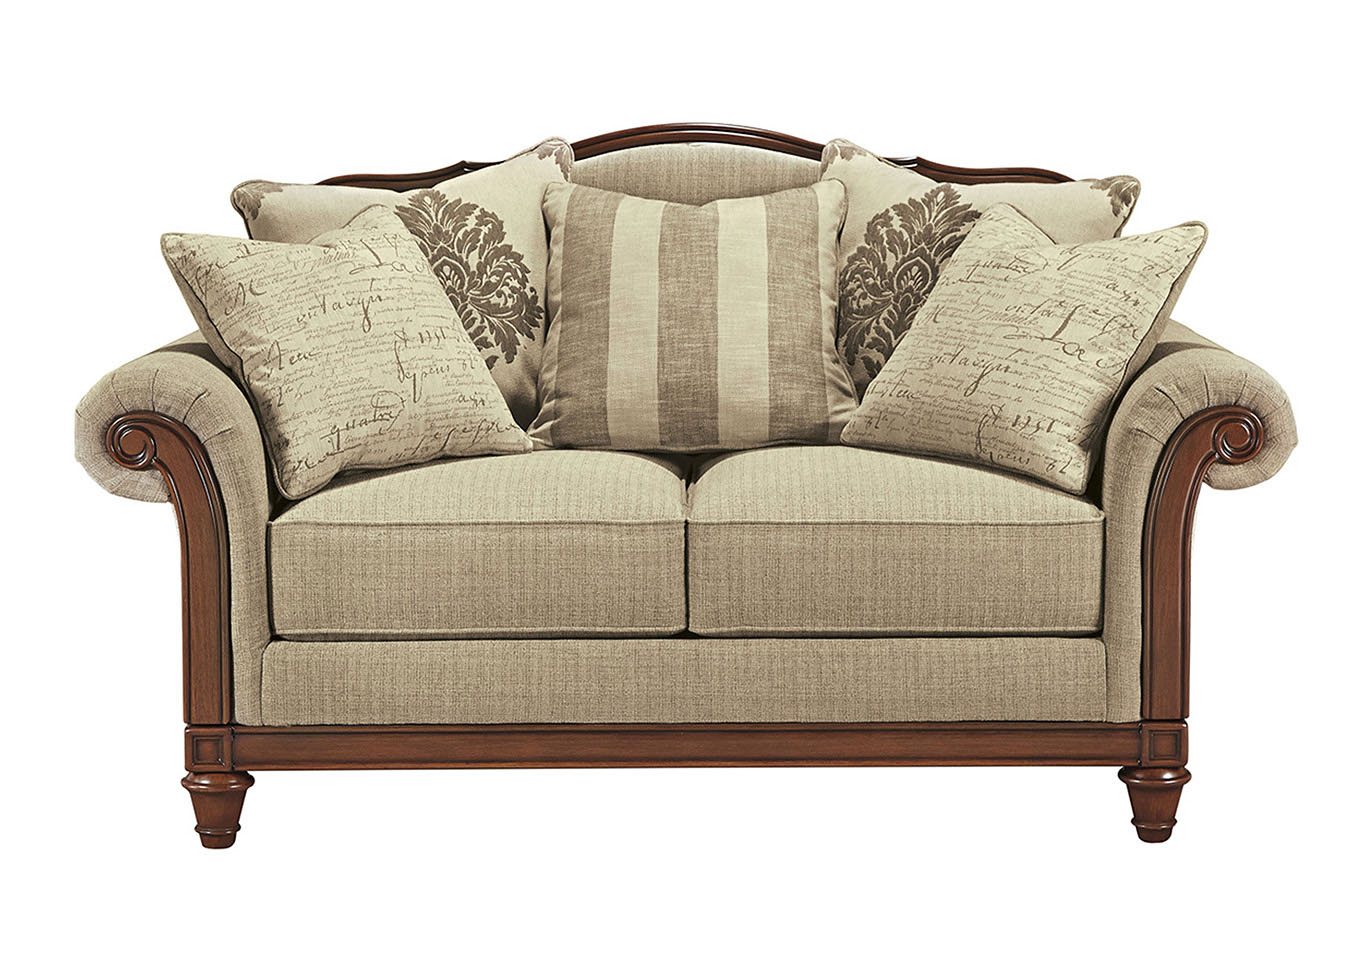 Berwyn View Quartz Loveseat,Signature Design By Ashley